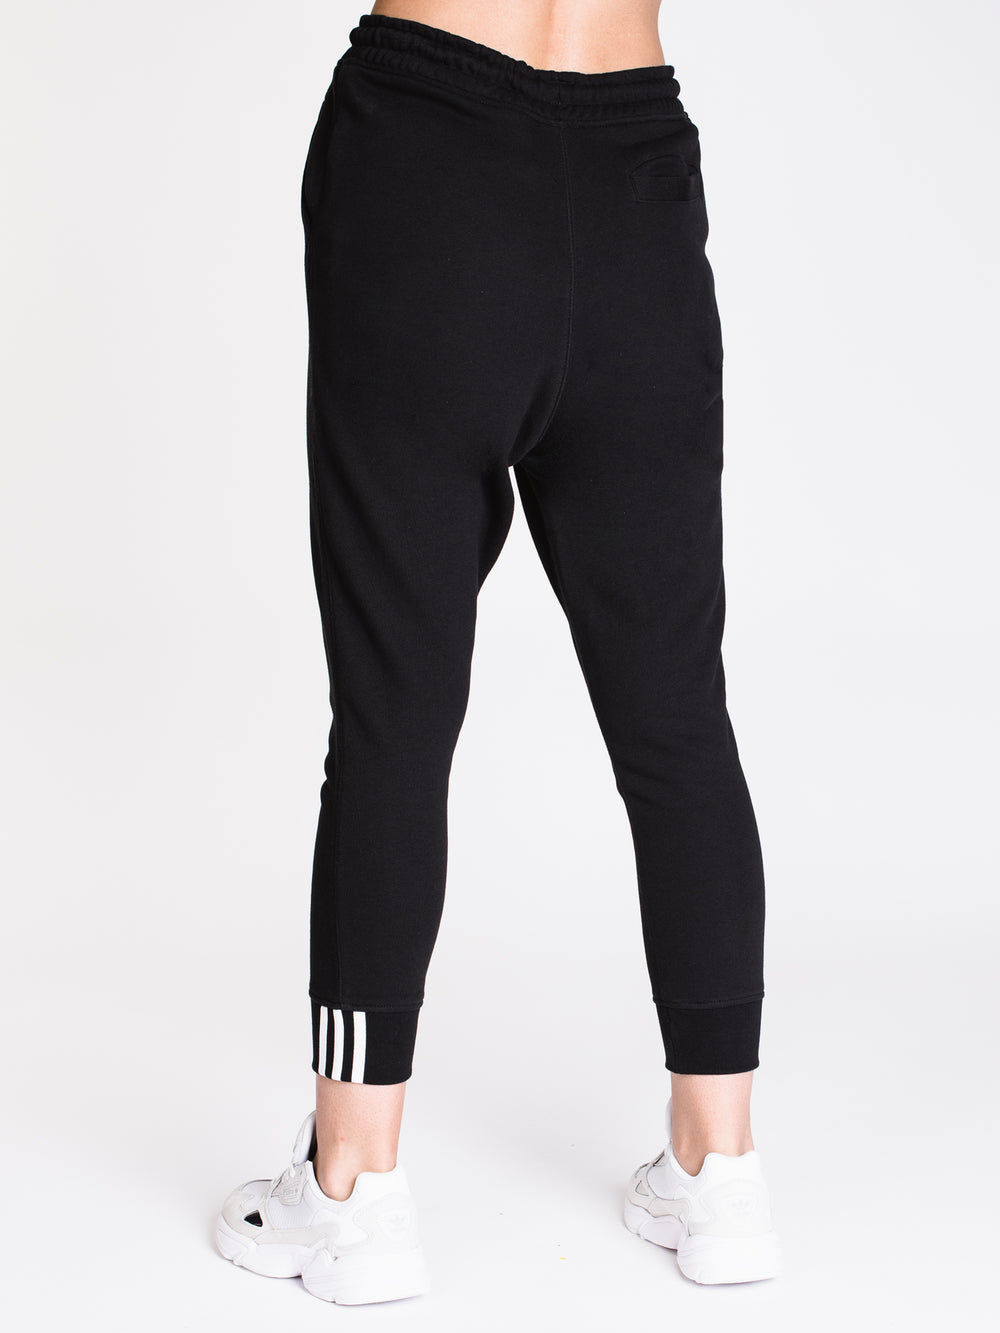 WOMENS VOCAL PANT - BLACK